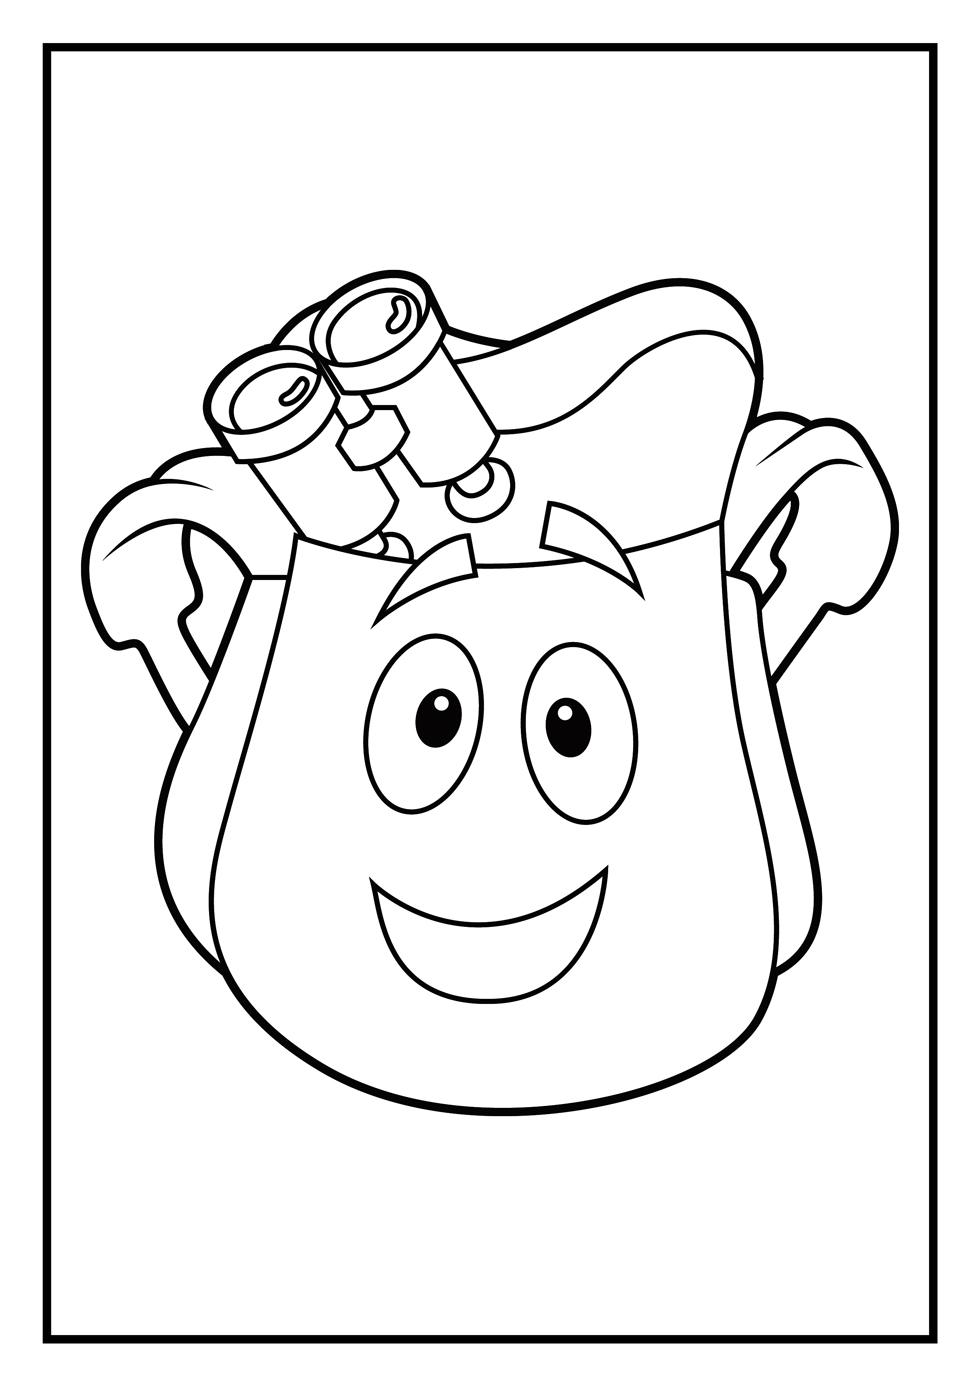 deigo coloring pages - photo#28